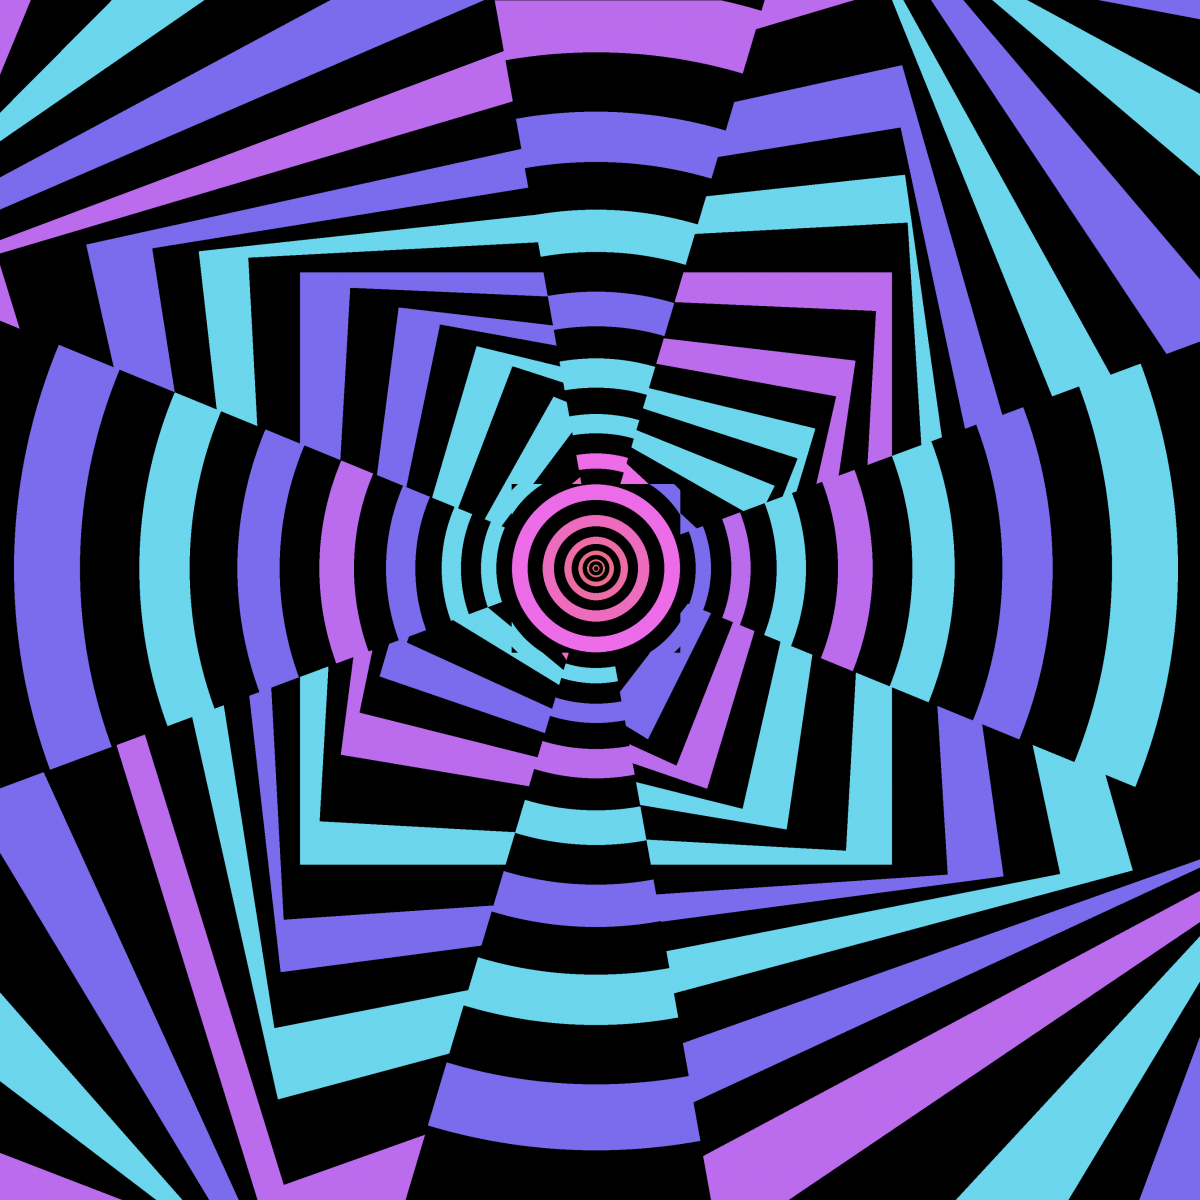 Spun Out Spiral | Illusions, Spin out, Optical illusions